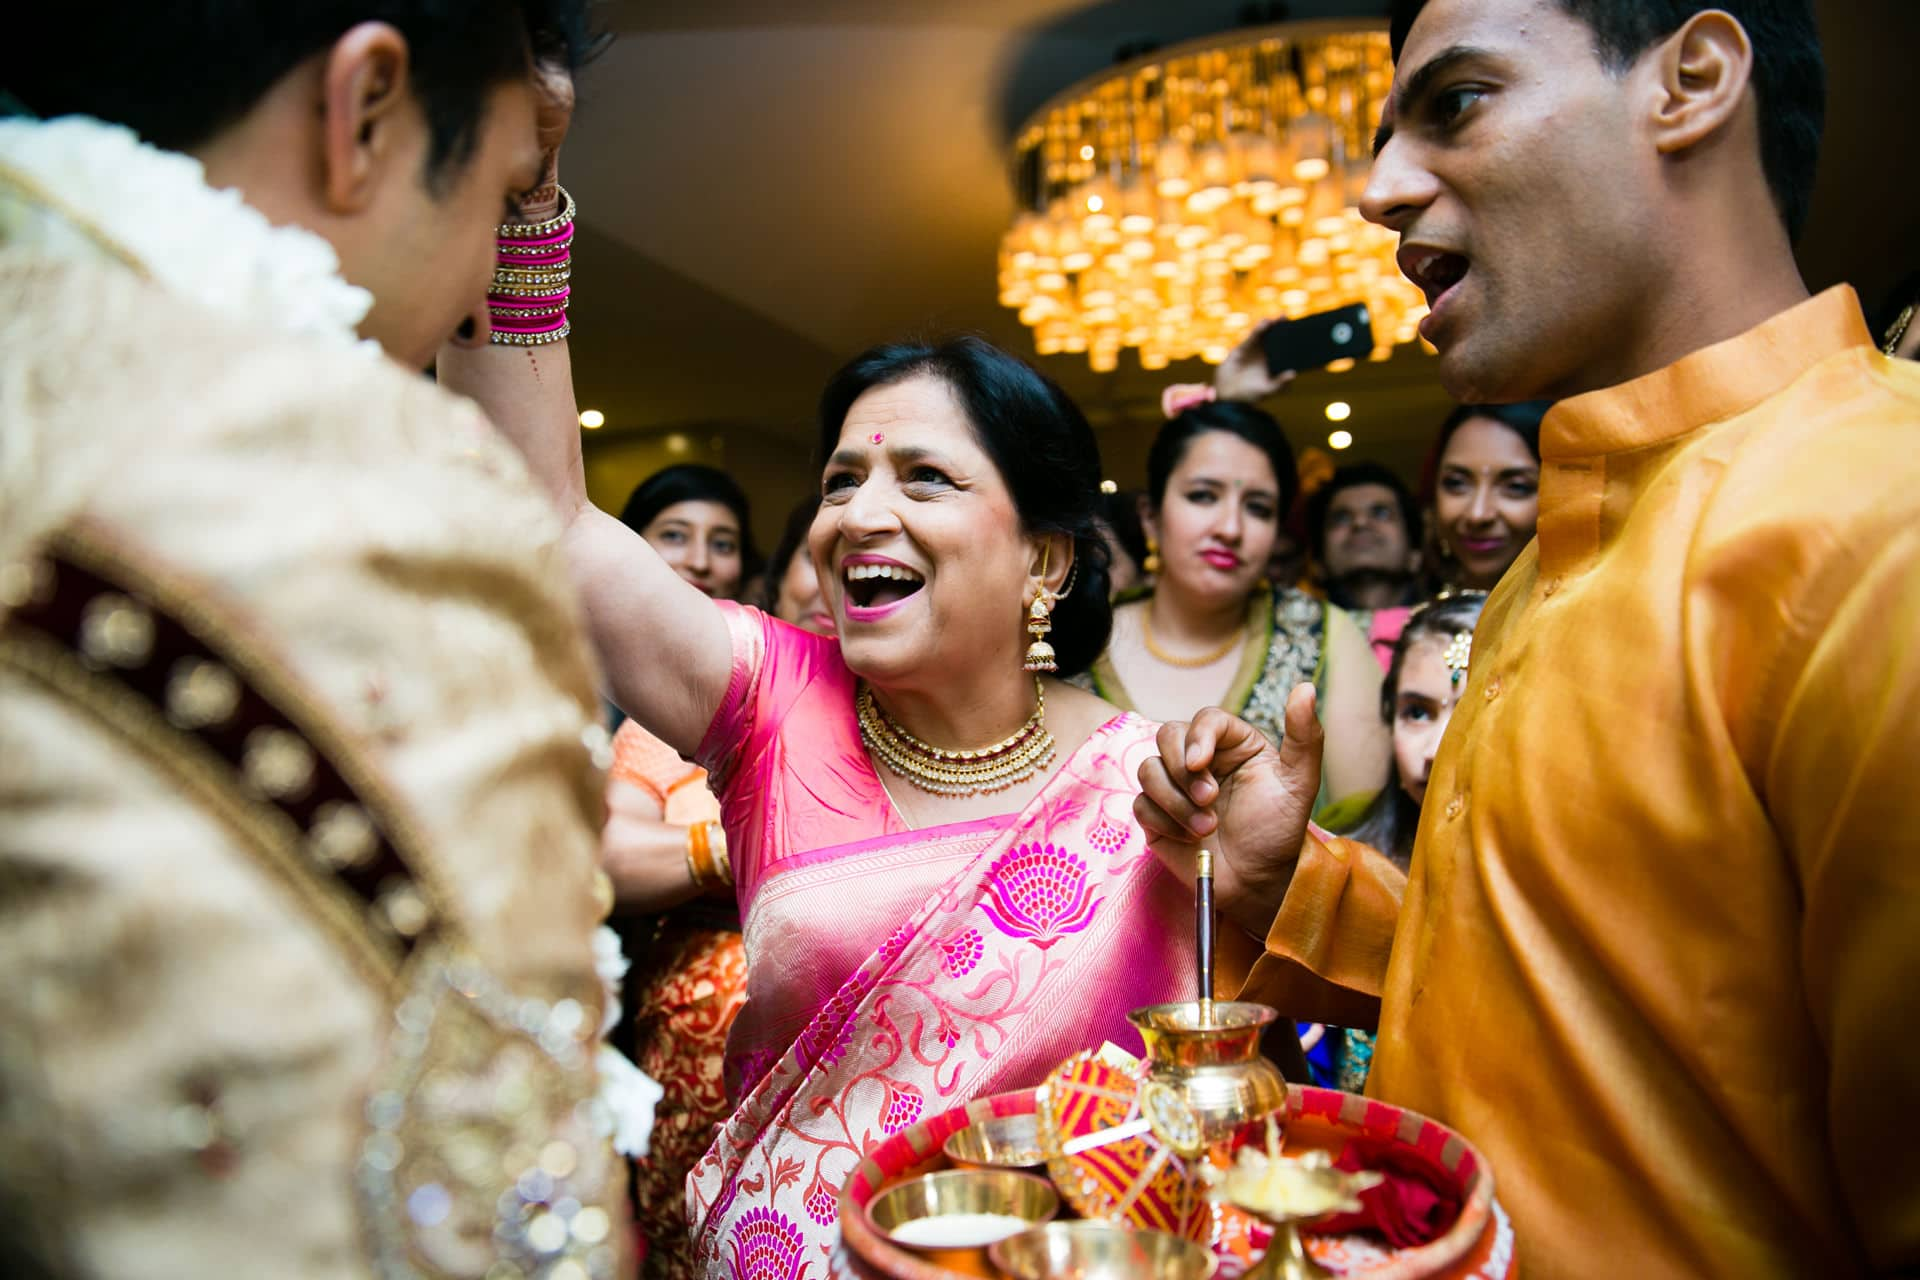 Hindu wedding welcoming ceremony